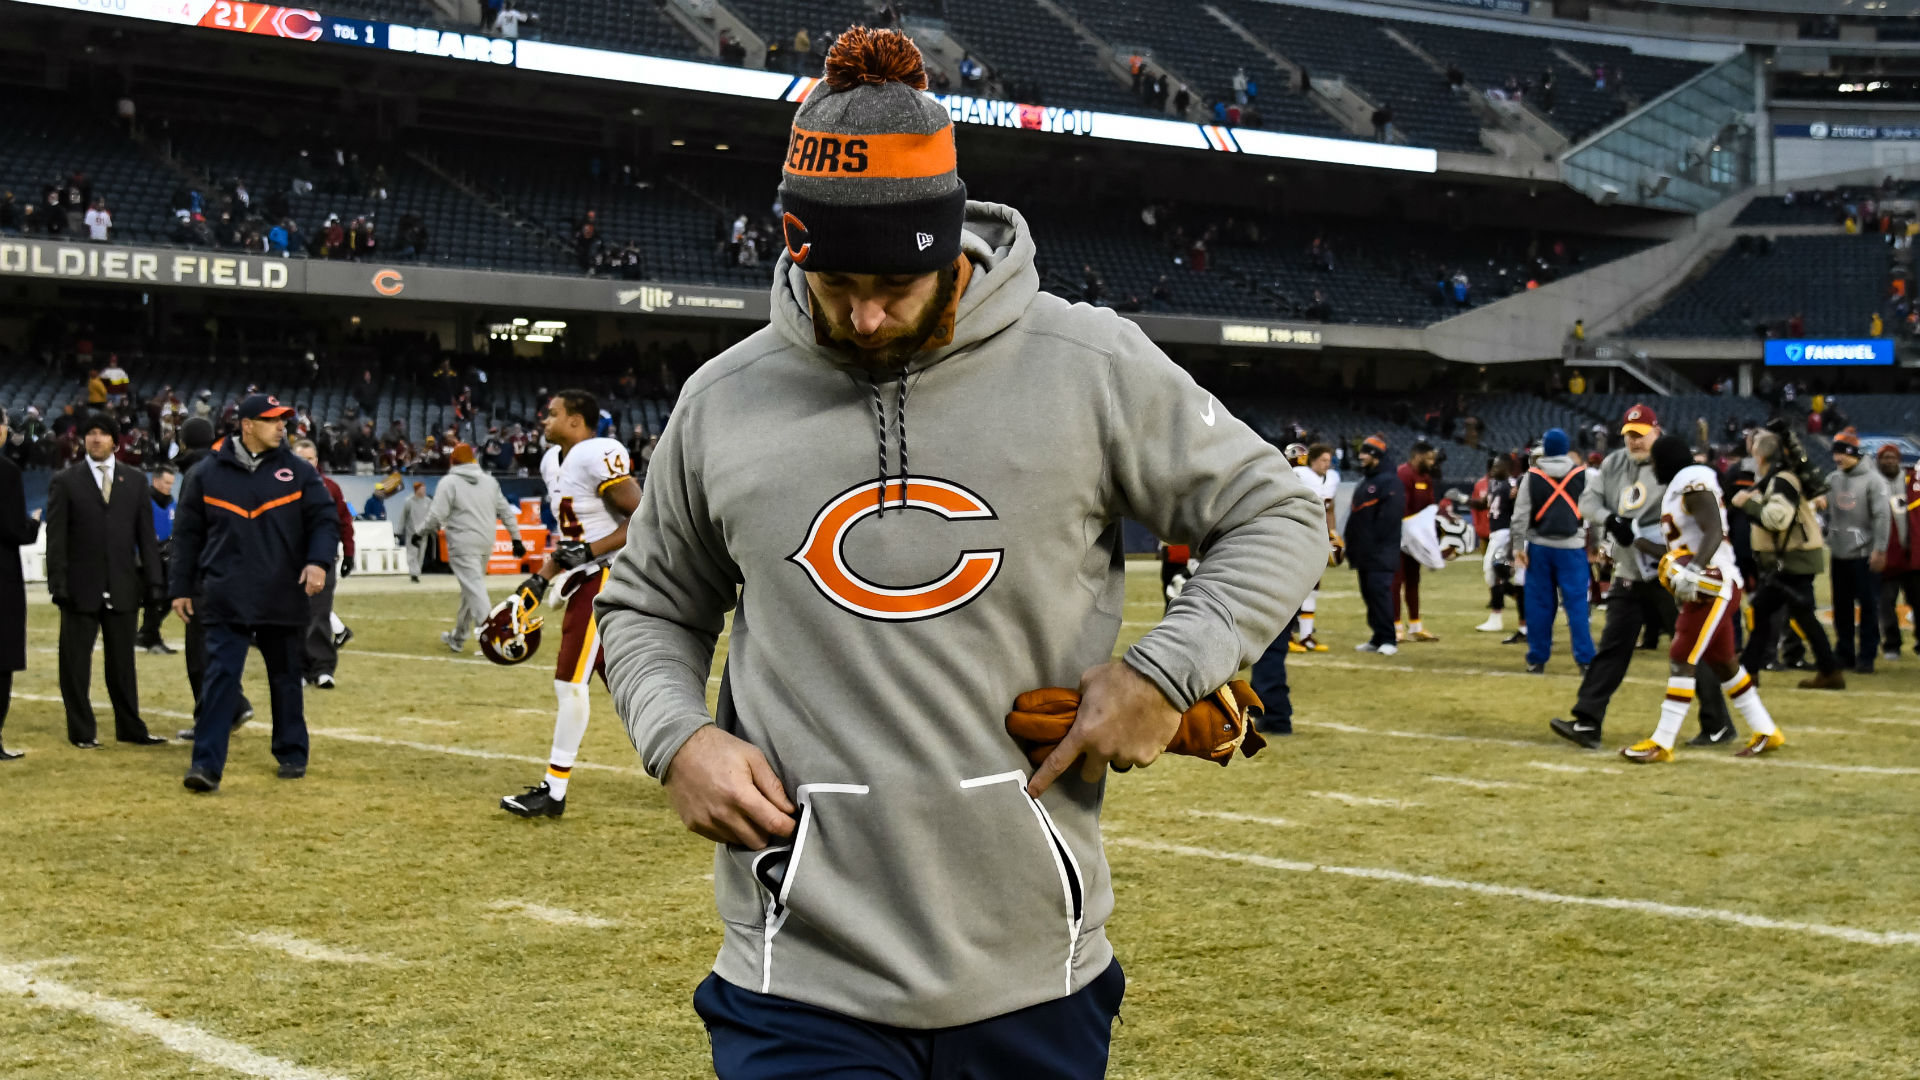 Jay Cutler wants a perfect solution or will retire from NFL, per report